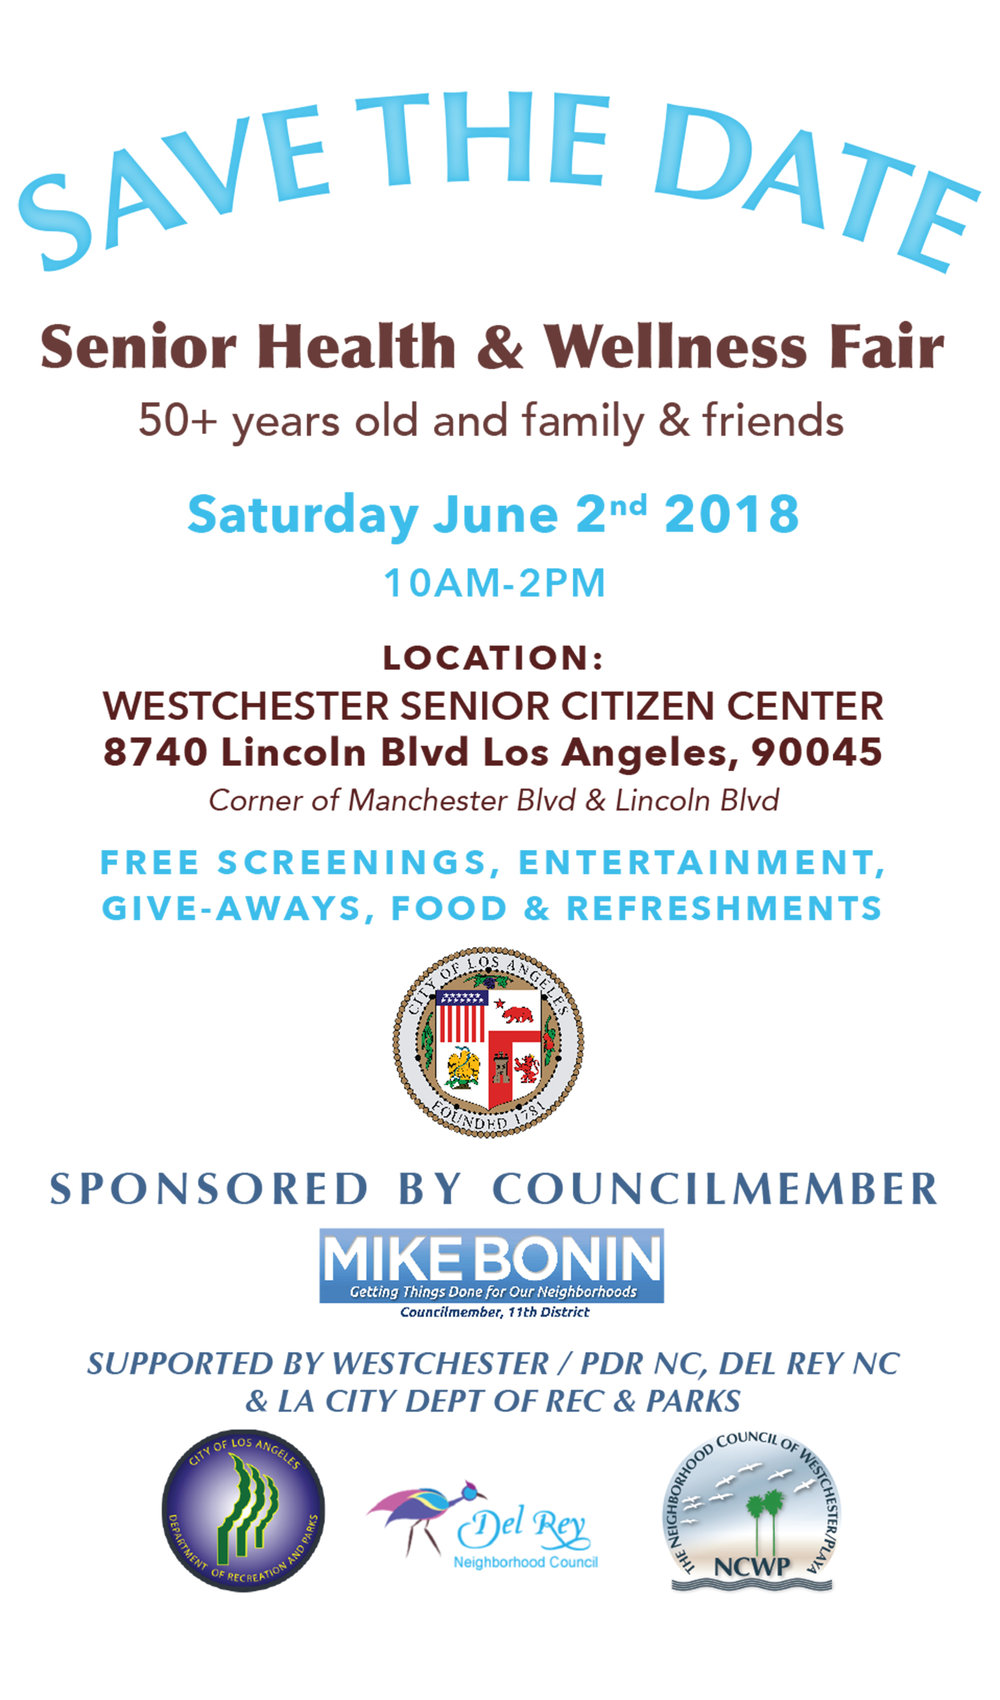 Westchester Senior Health Wellness Fair Flyer 2018 (7).jpg